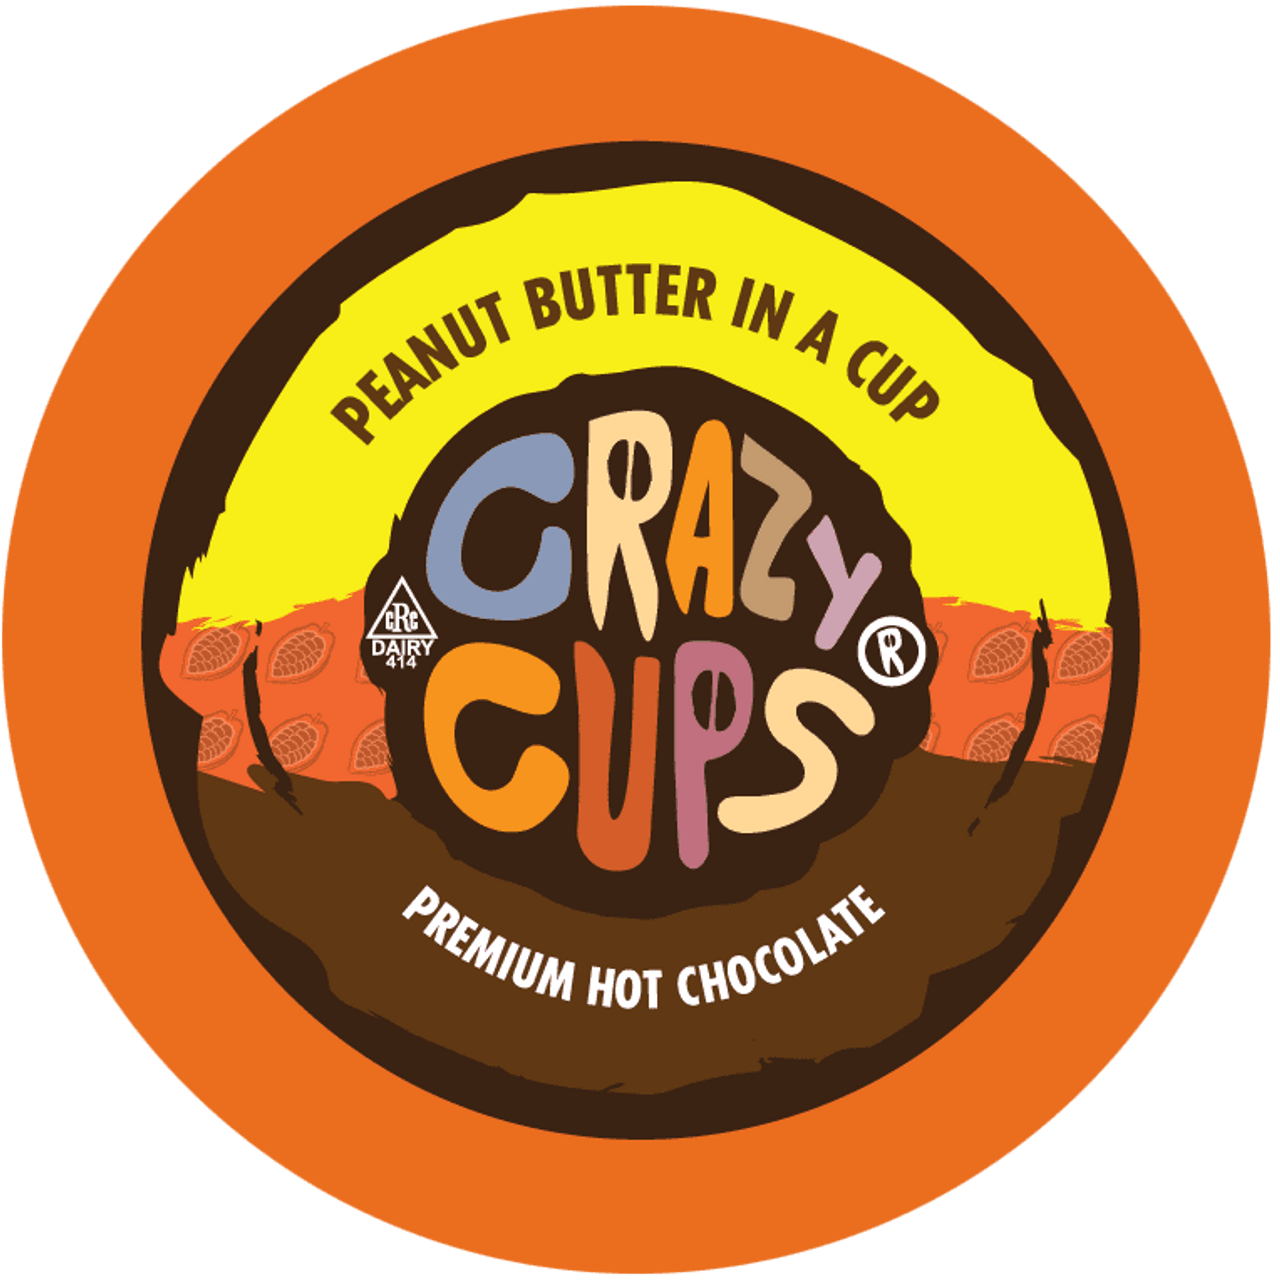 Crazy Cups Peanut Butter in a Cup Hot Chocolate by Crazy Cups